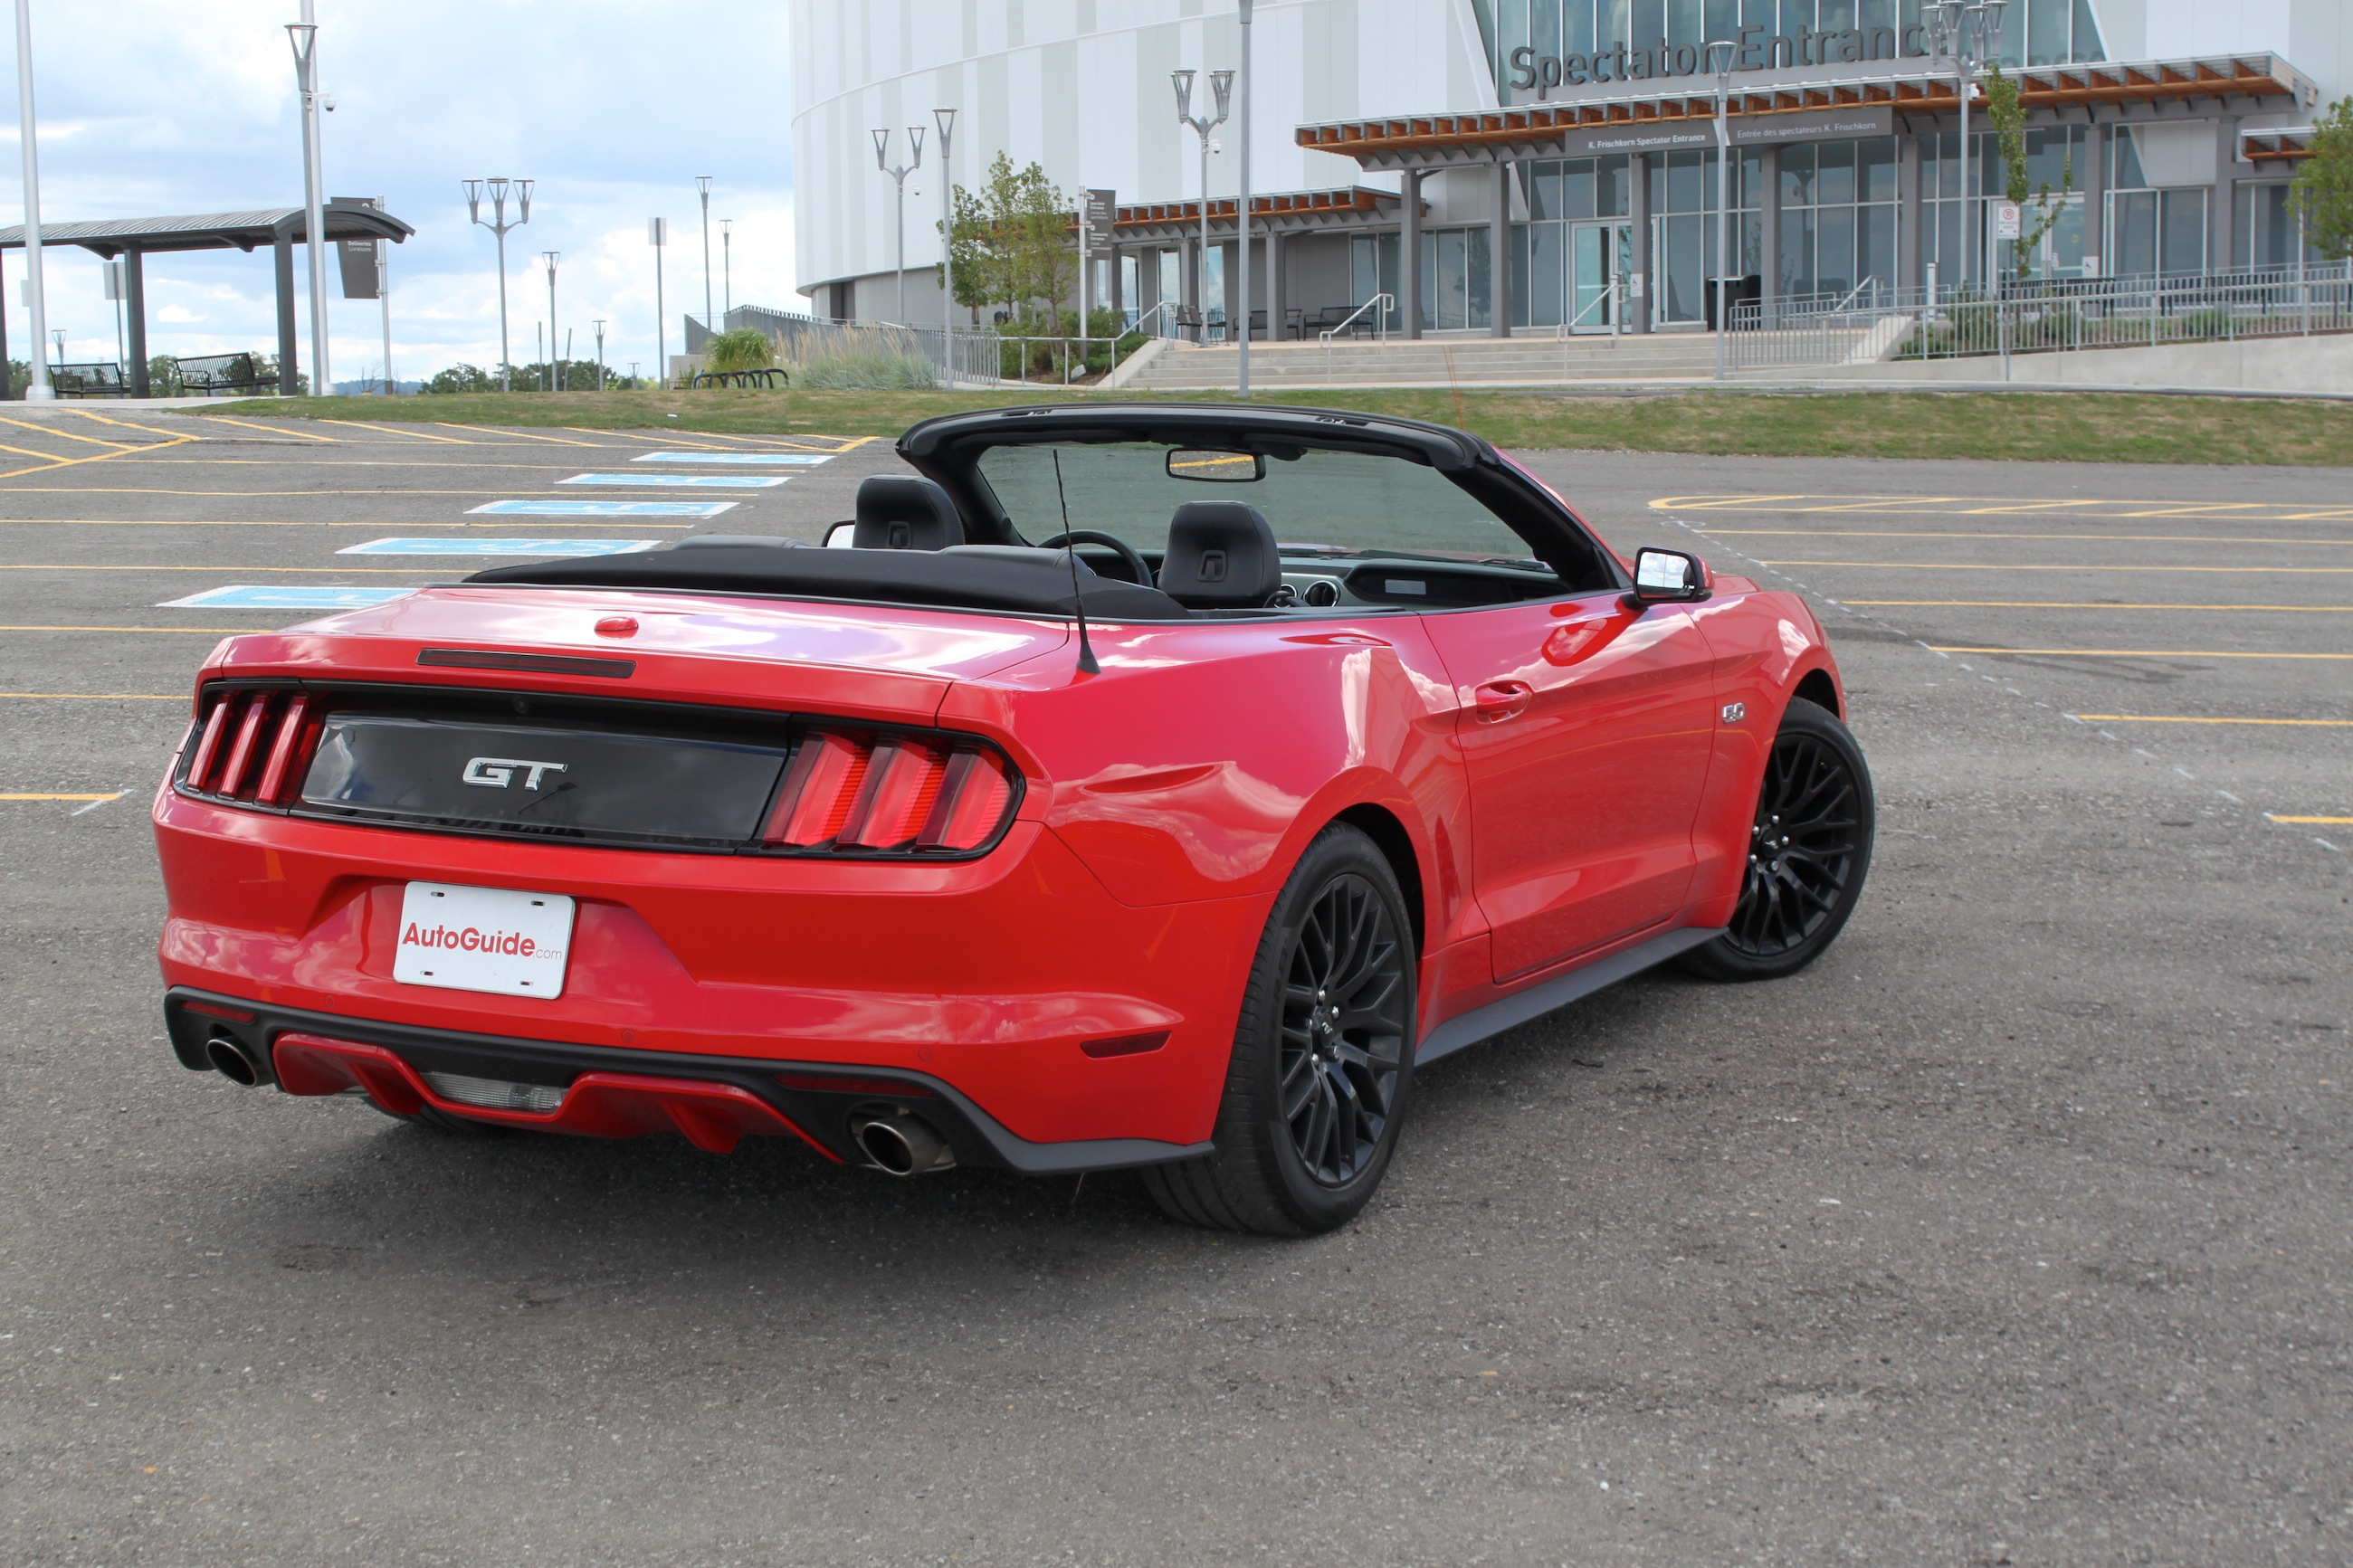 2017 Mustang Gt Convertible Review 22